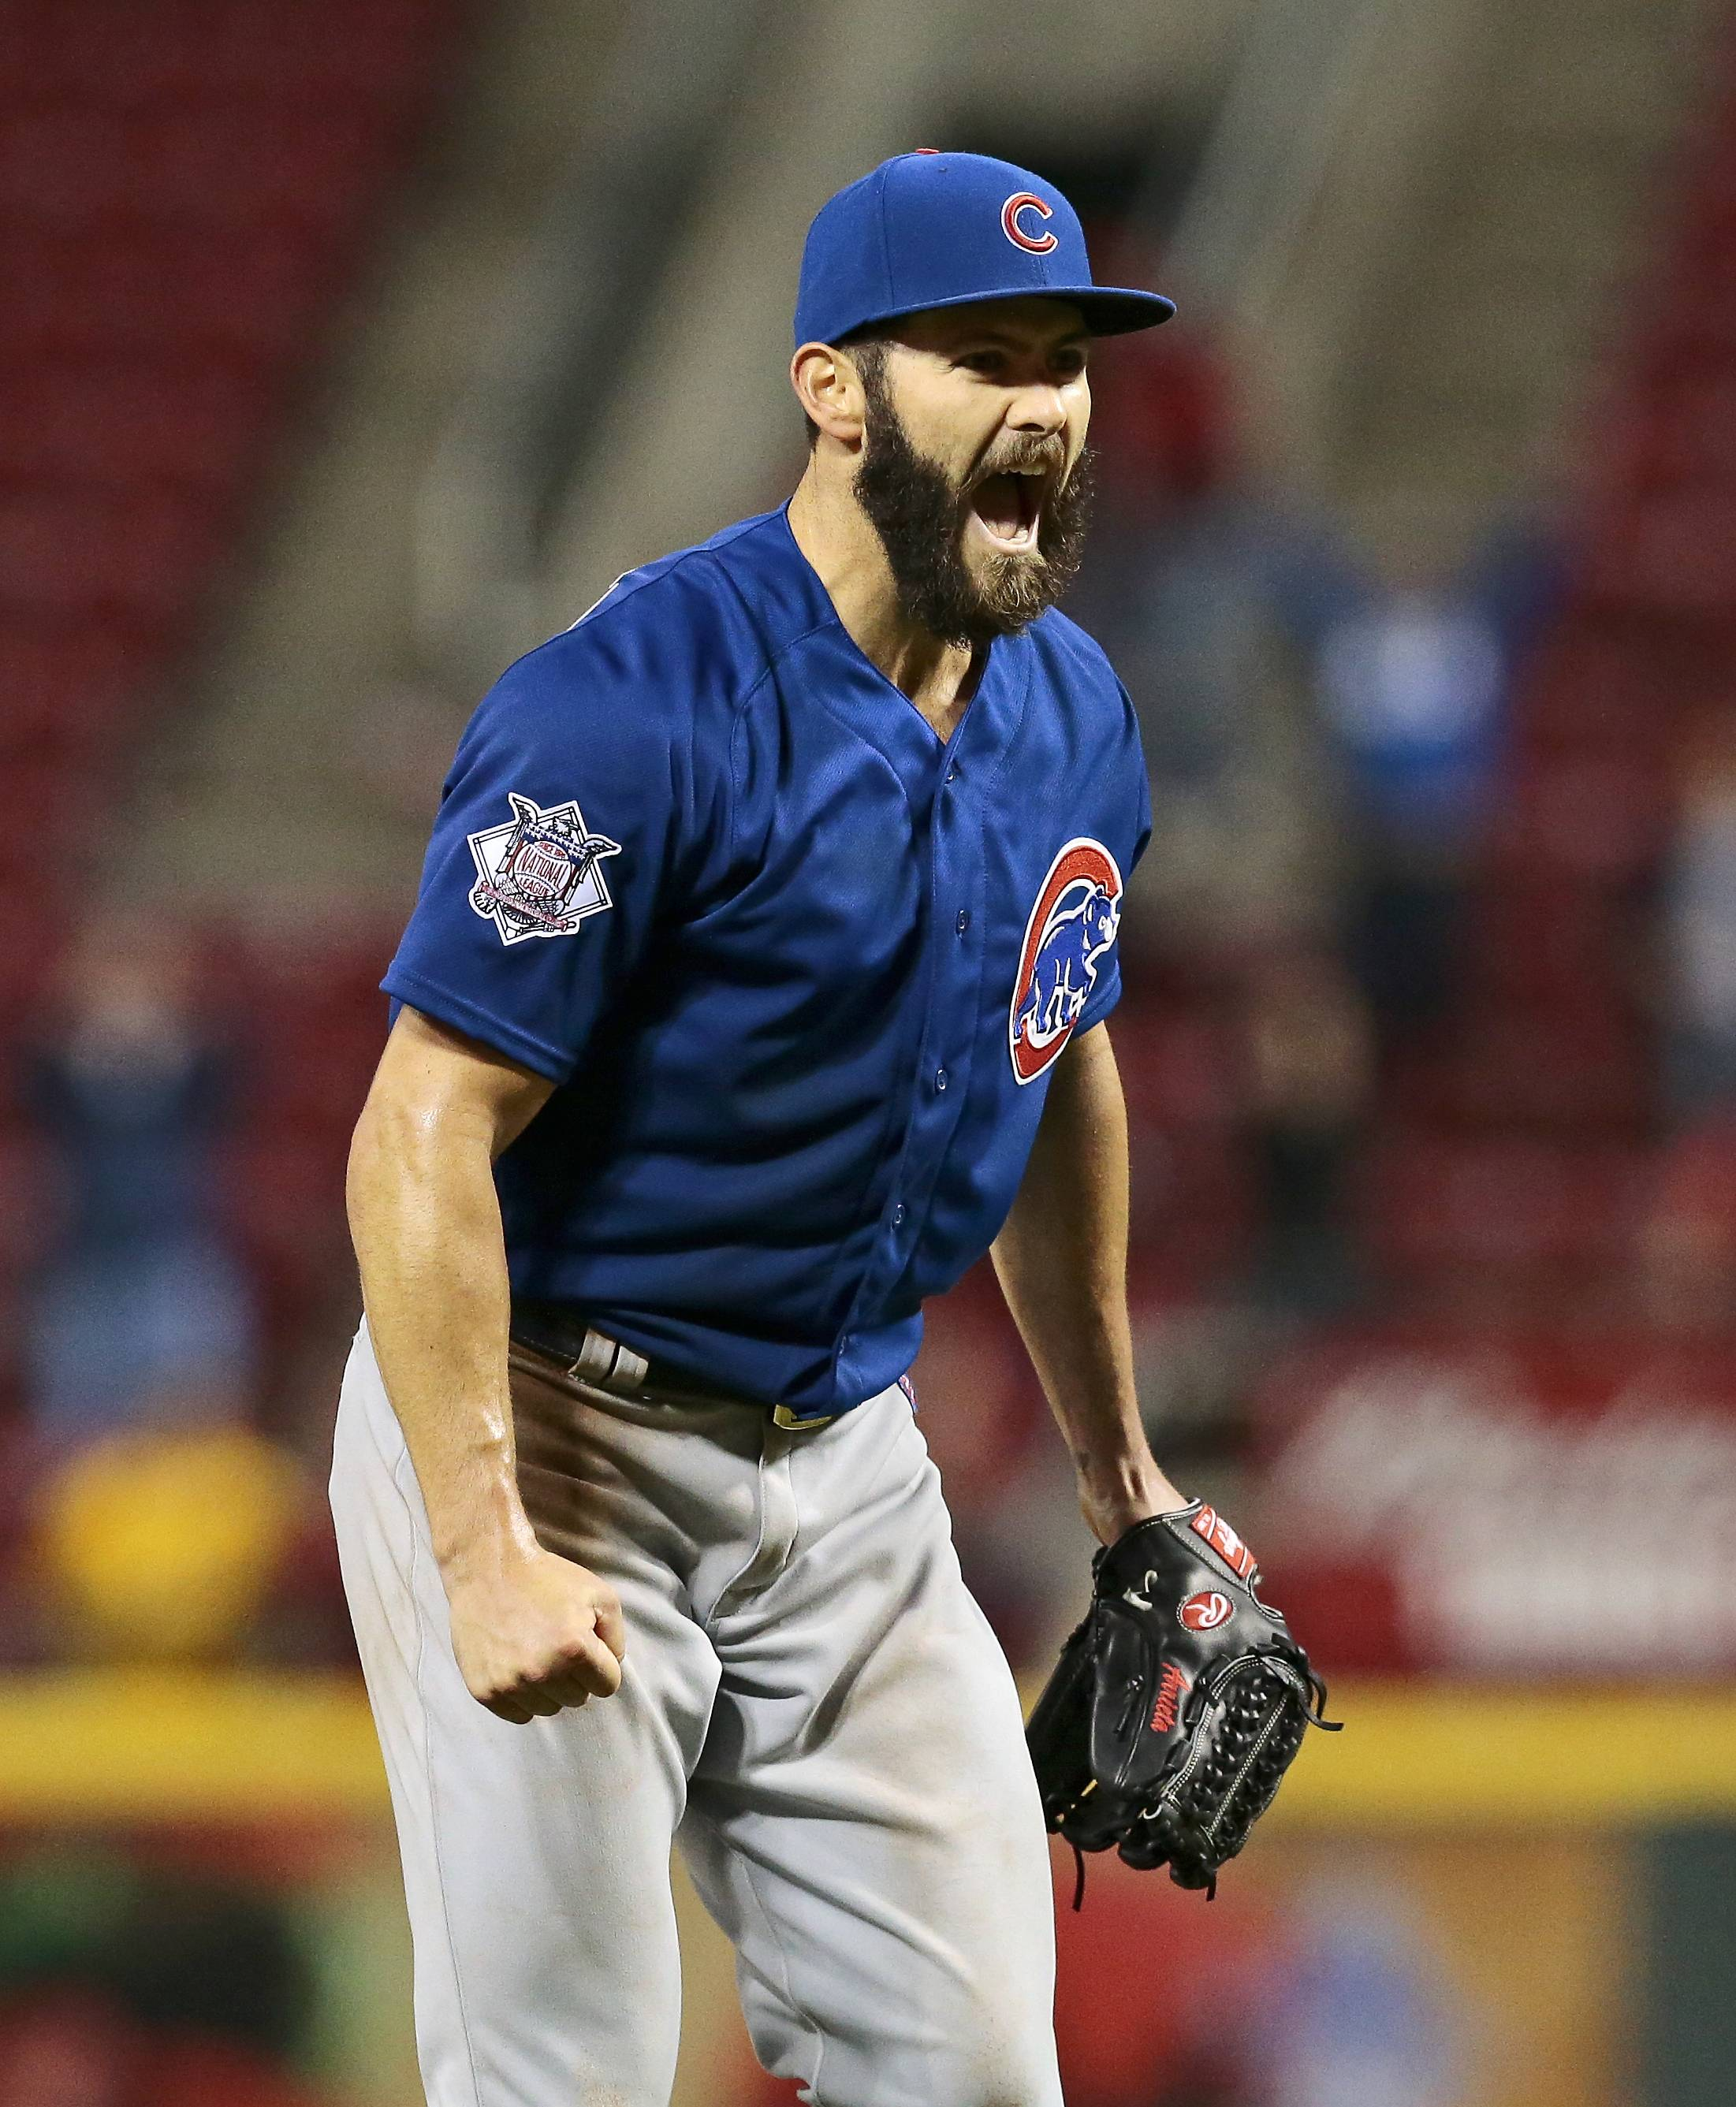 Chicago Cubs starting pitcher Jake Arrieta jumps in celebration after the final out of his second career no-hitter, against the Cincinnati Reds on April 21 in Cincinnati.